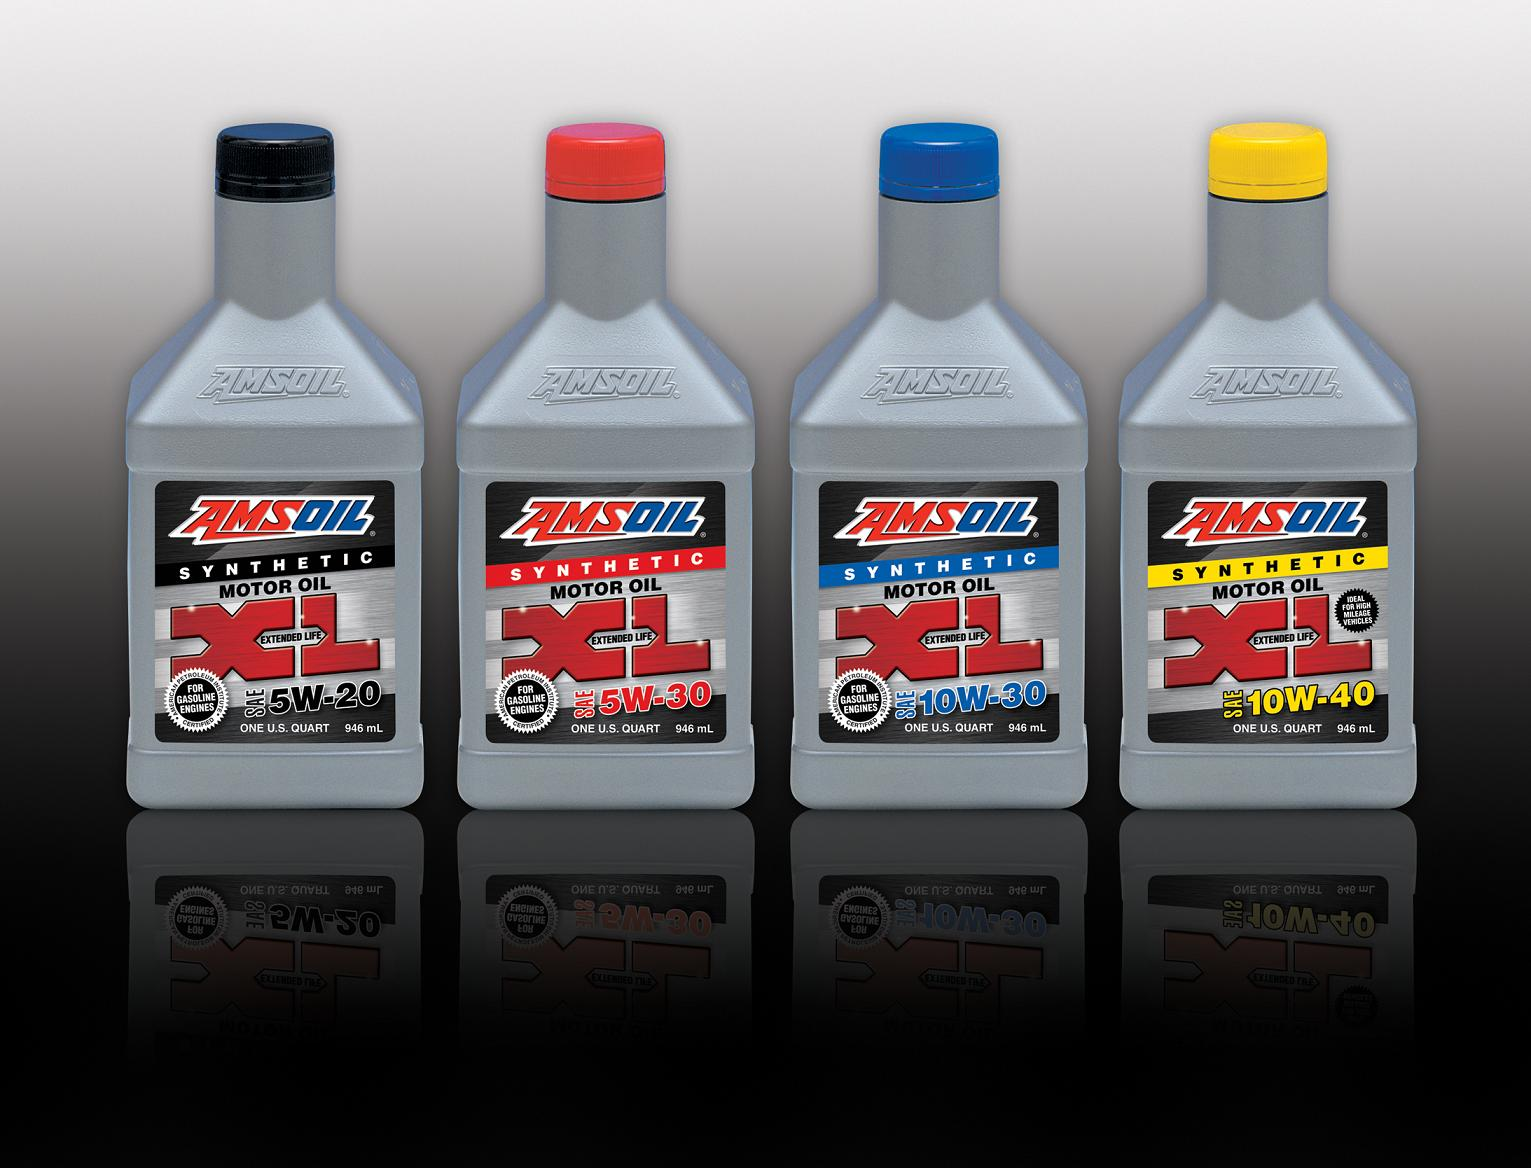 AMSOIL XL Synthetic Motor Oils employ an extra treatment of alkaline additives added to premium synthetic base stocks to neutralize acids. The extra additive package effectively raises the total base number (TBN) and resists shear to provide superior performance throughout the entire drain interval of up to 10,000 miles or six months, whichever comes first.